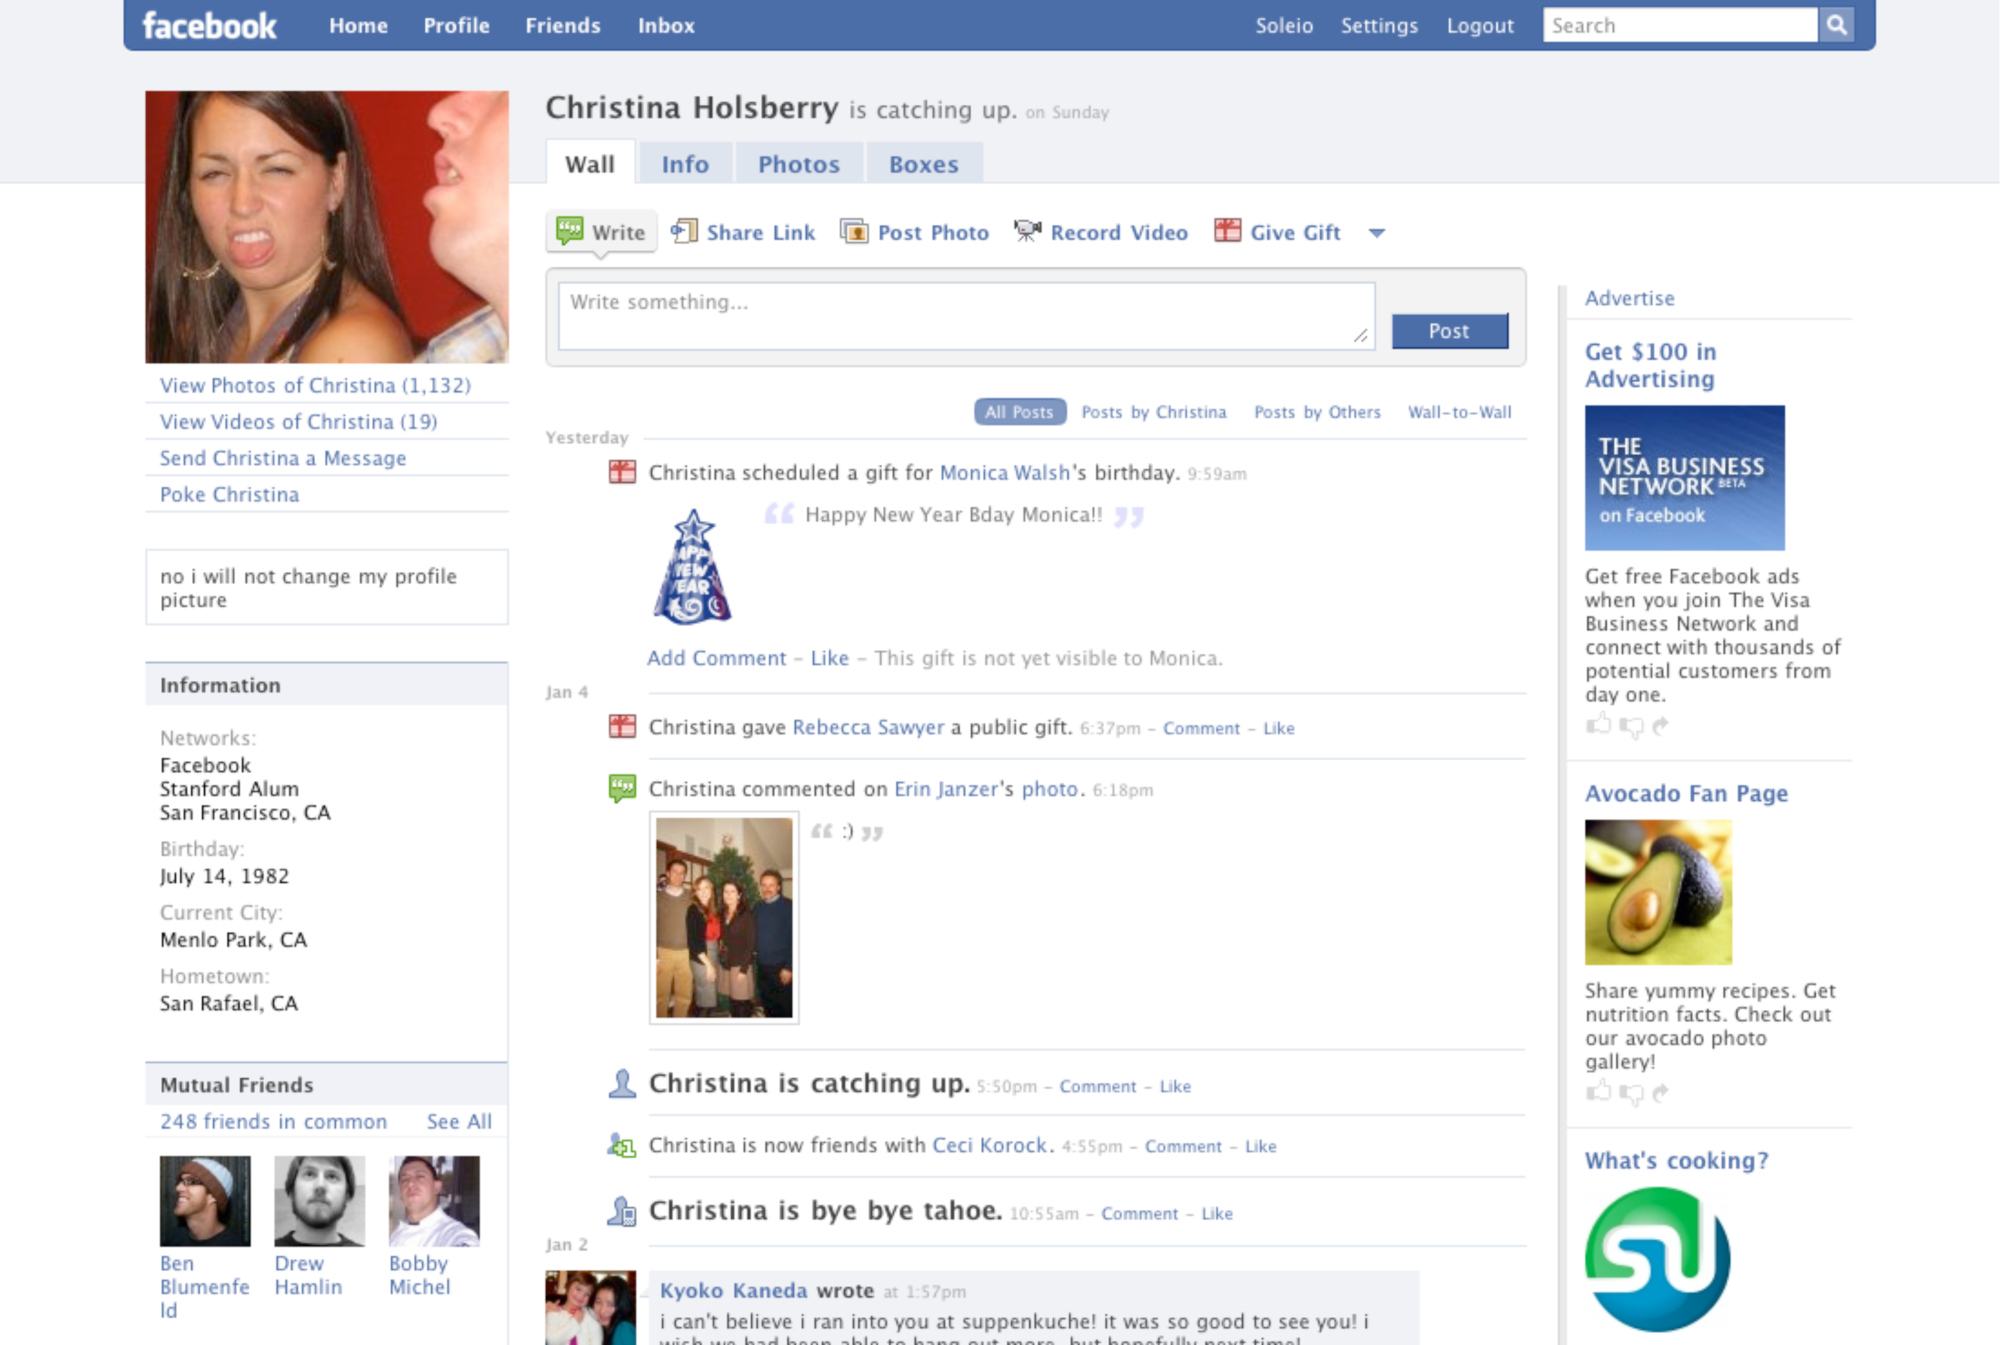 Facebook Profile Page, 2008. The wall.